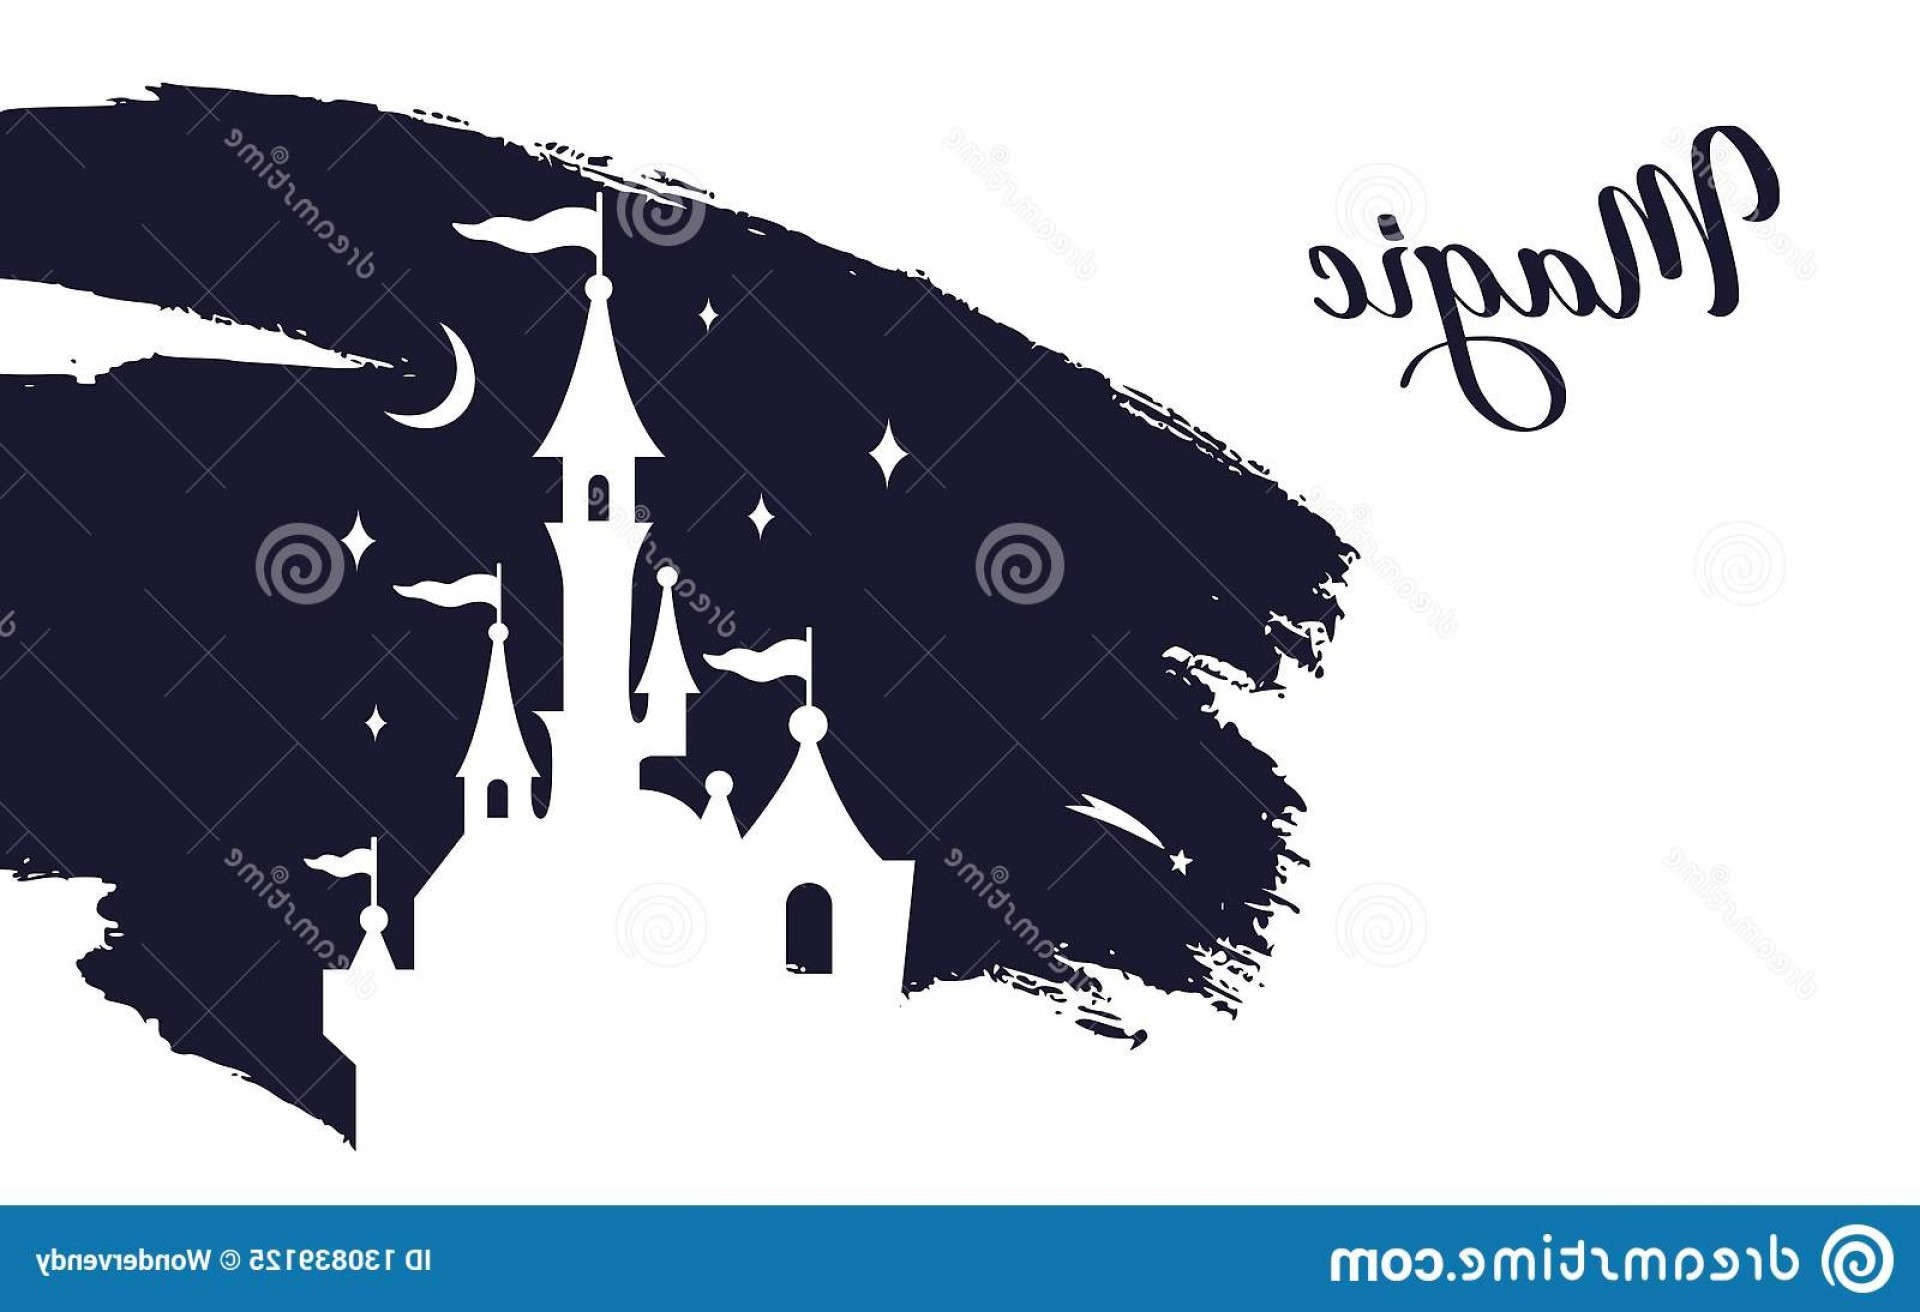 Wizard Silhouette Vector: Fairy Tale Vector Castle Silhouette Wizard World Fairy Tale Vector Castle Silhouette Wizard World Templates Interiors Decor Image